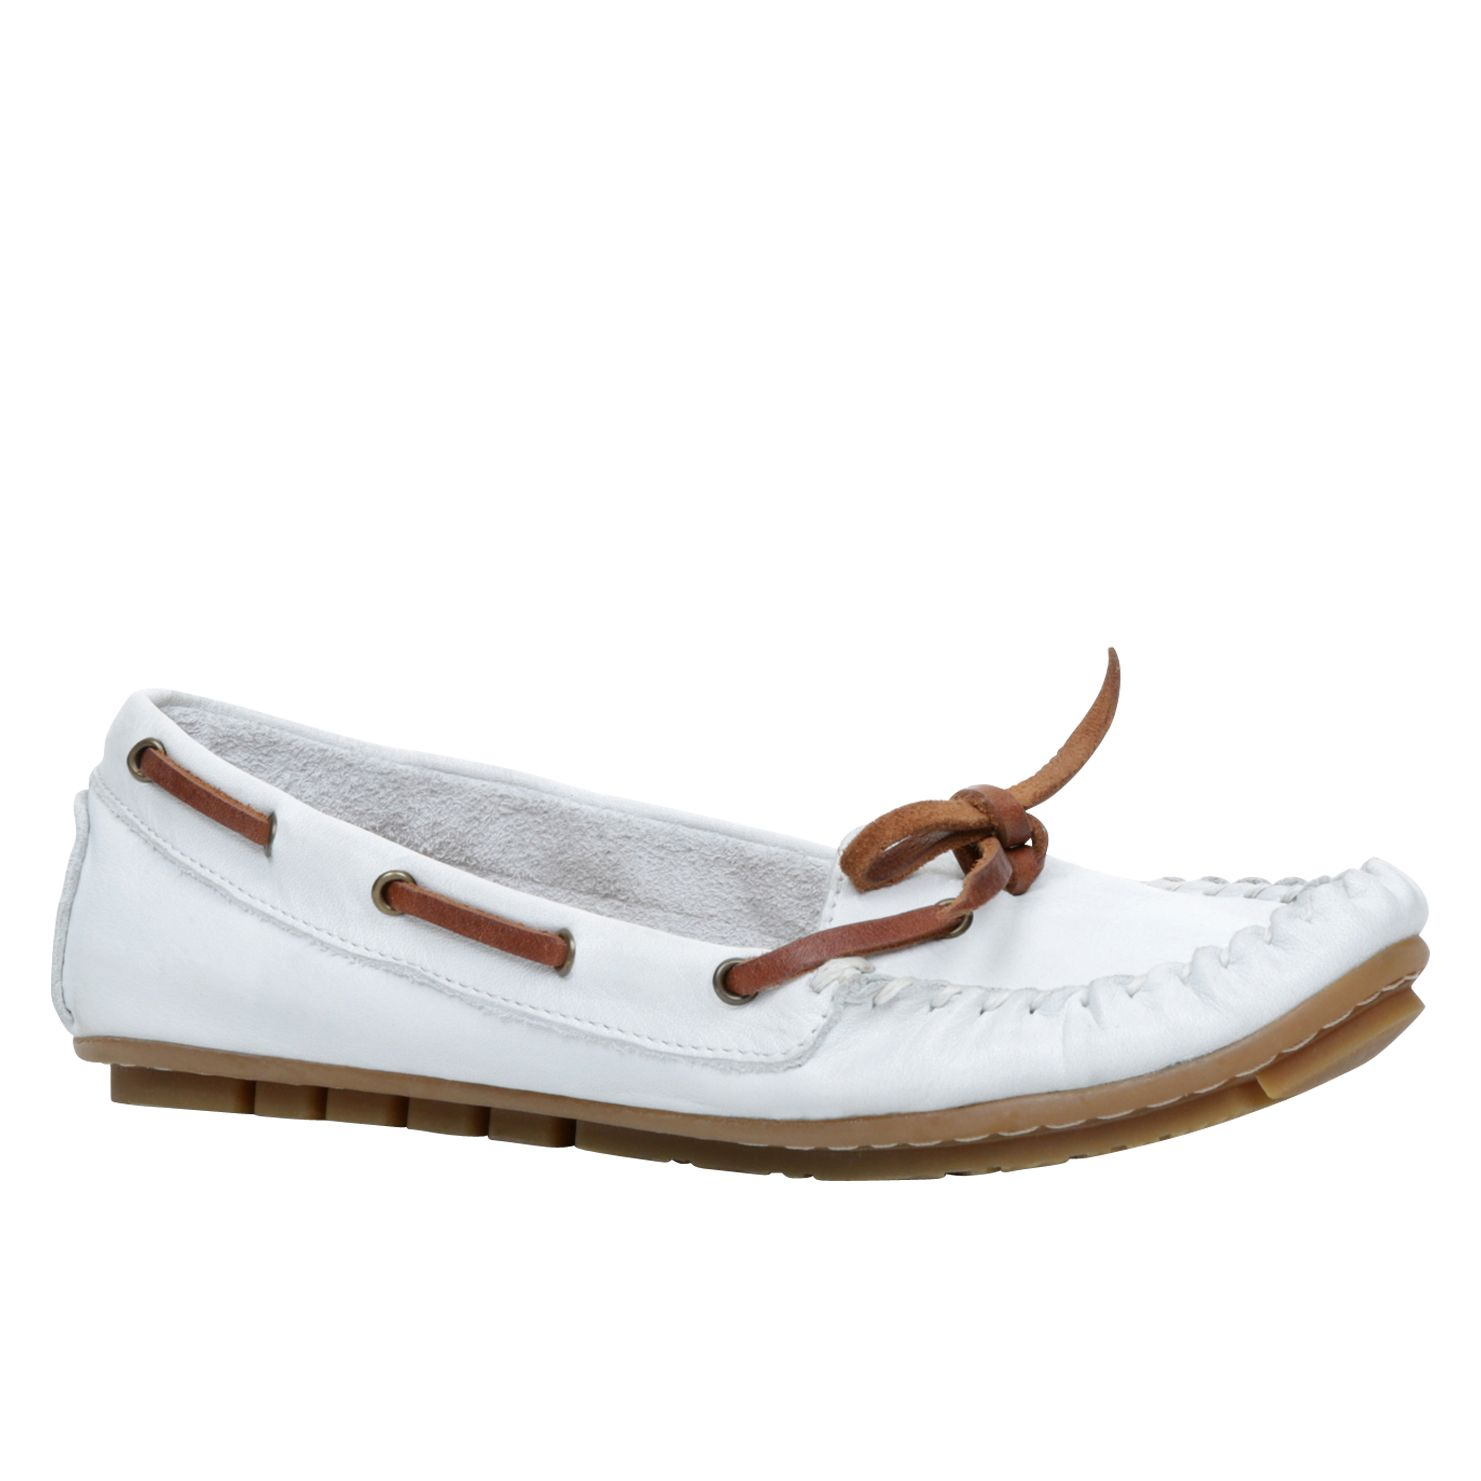 Spicar loafer boat shoes